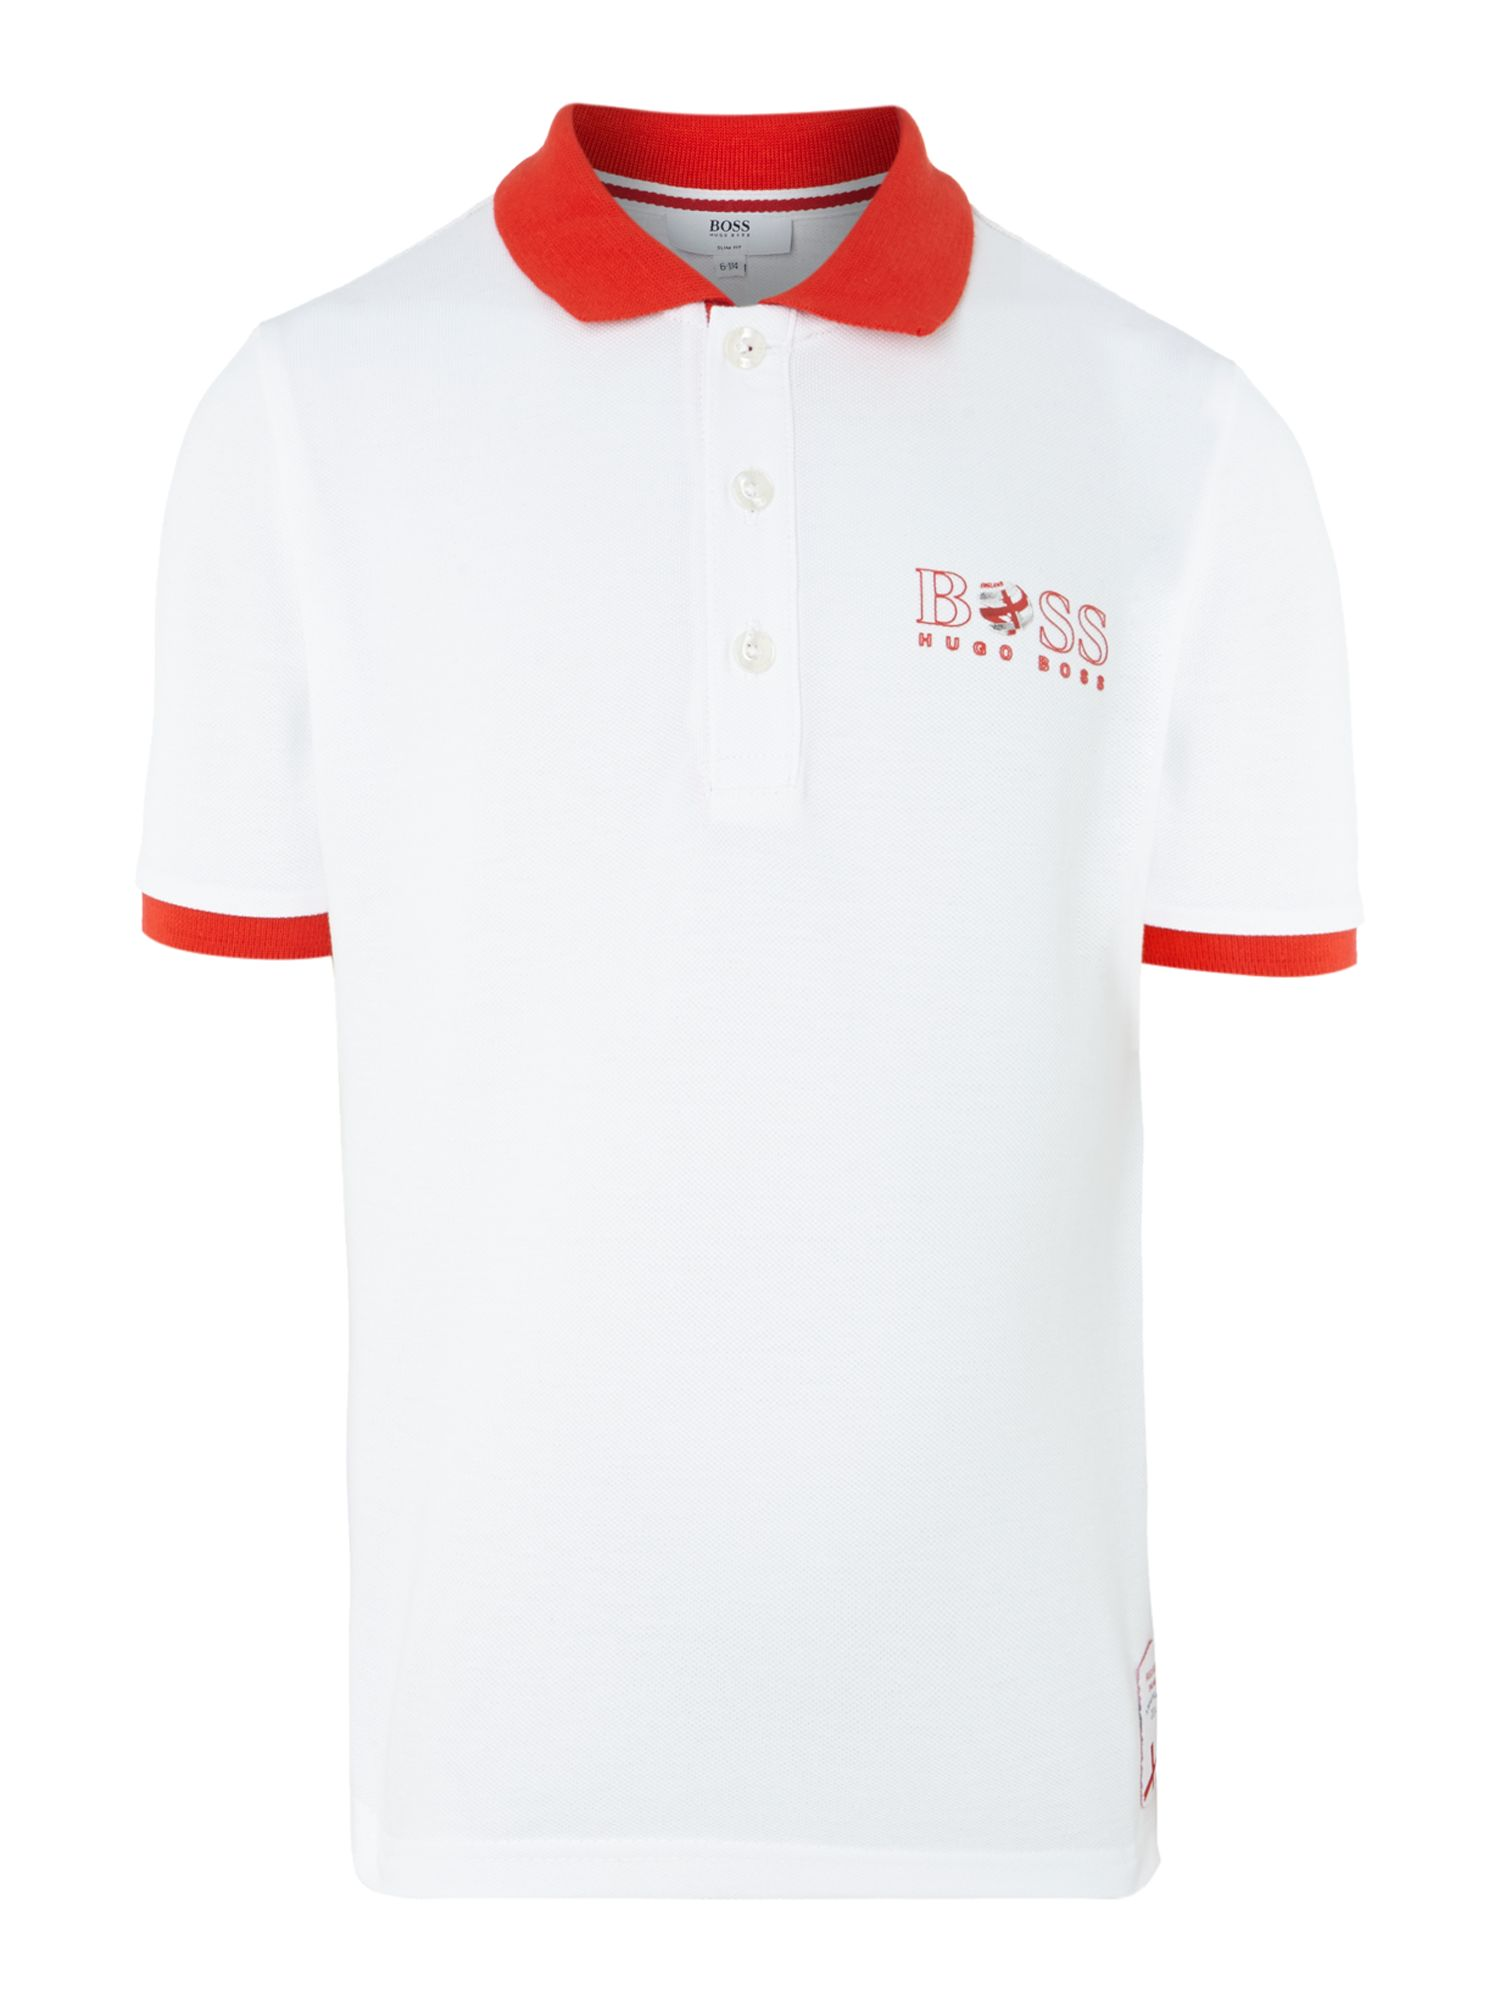 Kids England football colours polo shirt